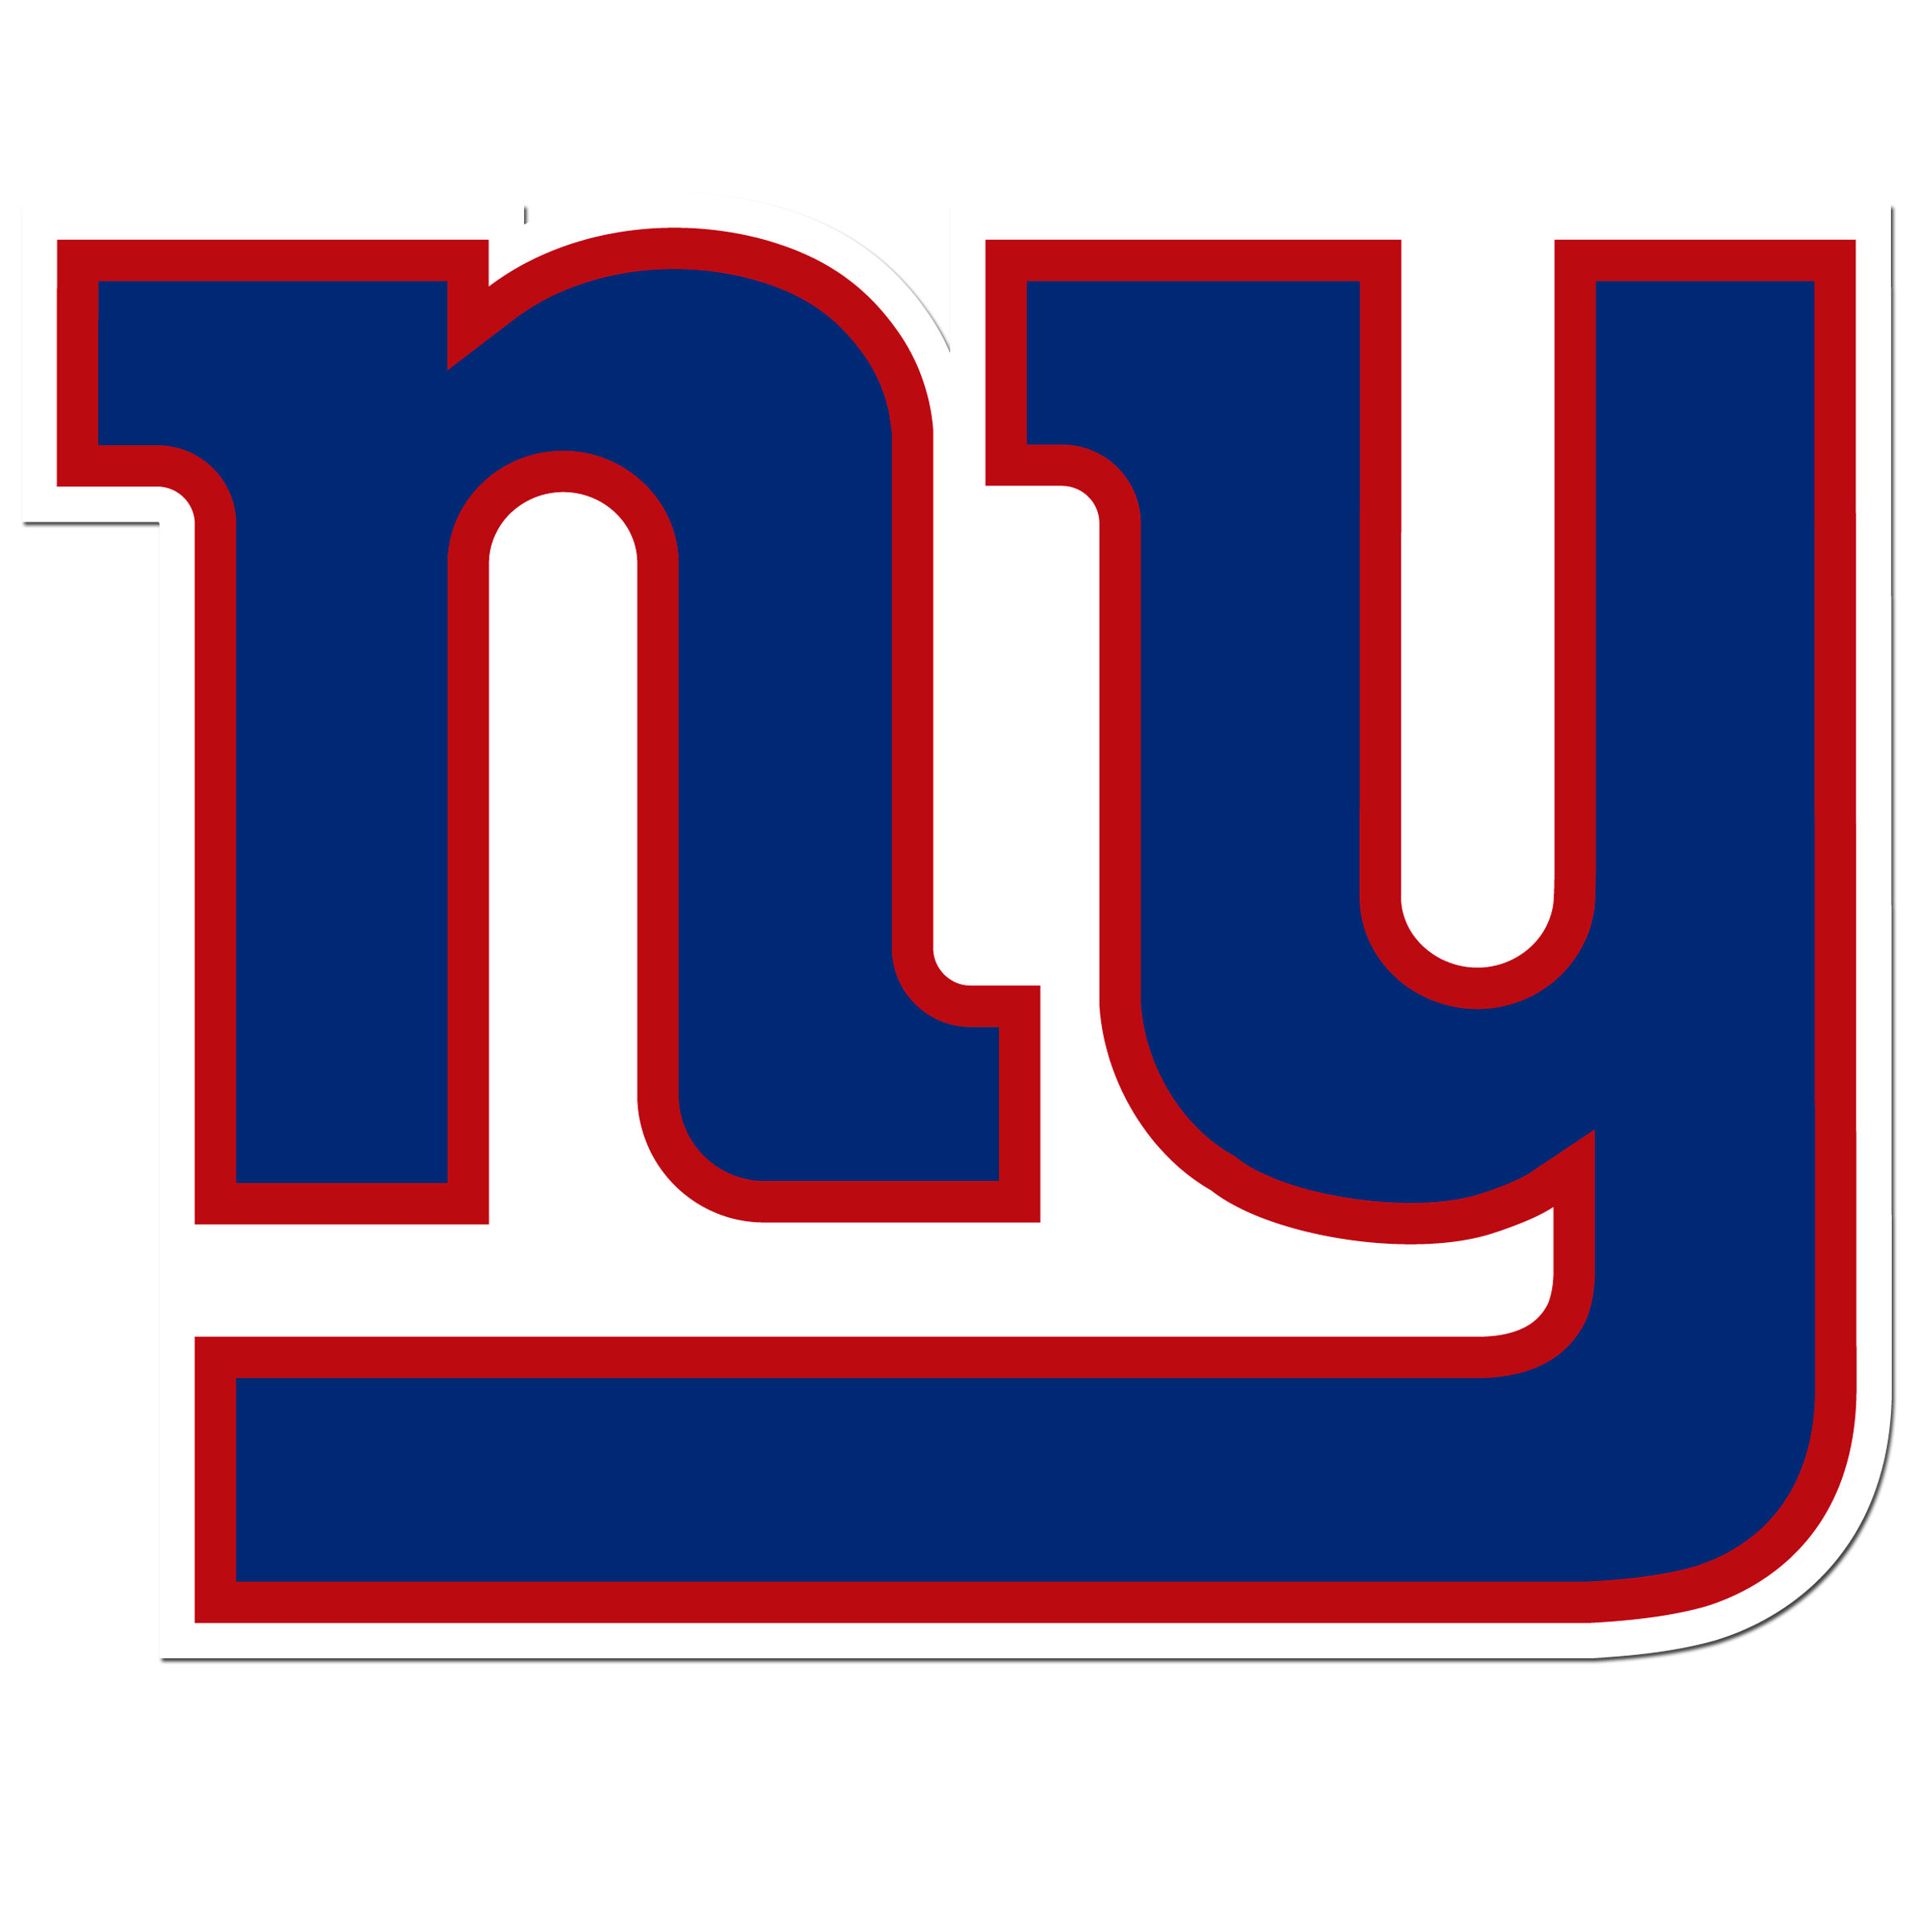 New York Giants 8 inch Auto Decal - This bold, 8 inch New York Giants is a great way to show off your team pride! The low tack vinyl decal is easily positioned and adjusted to make sure you get that logo in just the right spot on your vehicle. Designed to be used on the outside of the window.